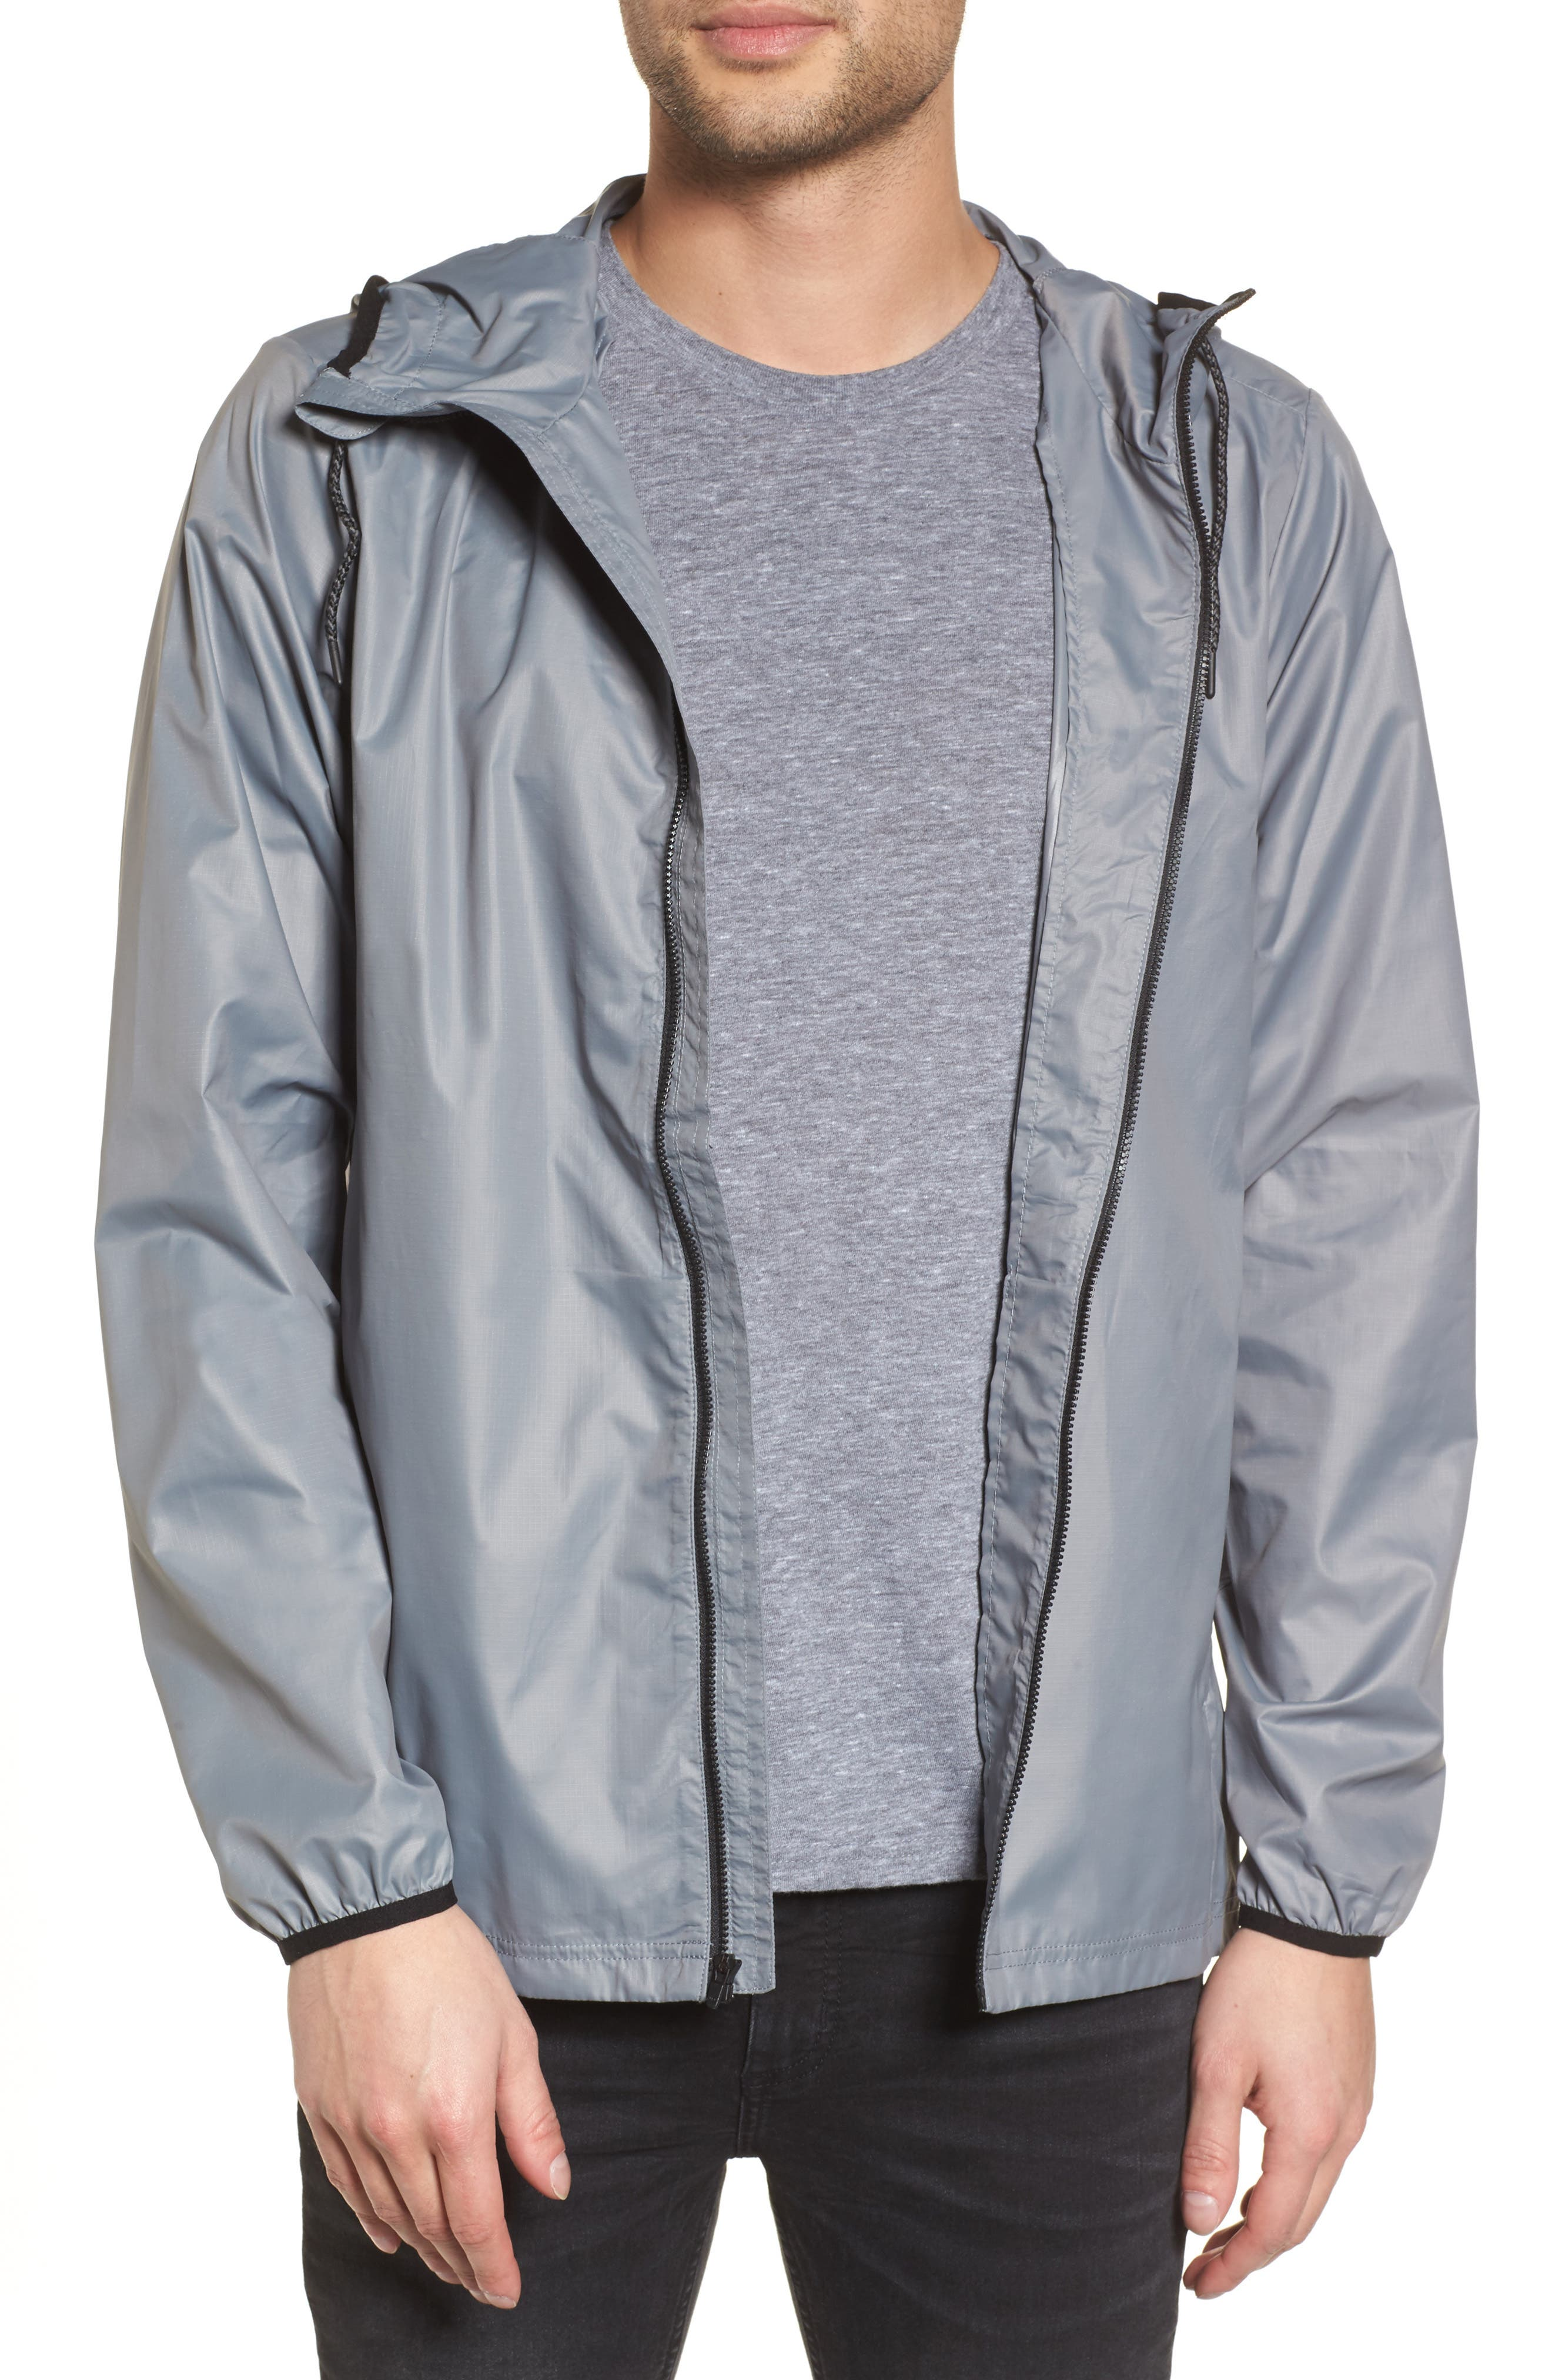 Alternate Image 1 Selected - Hurley Solid Protect 2.0 Jacket